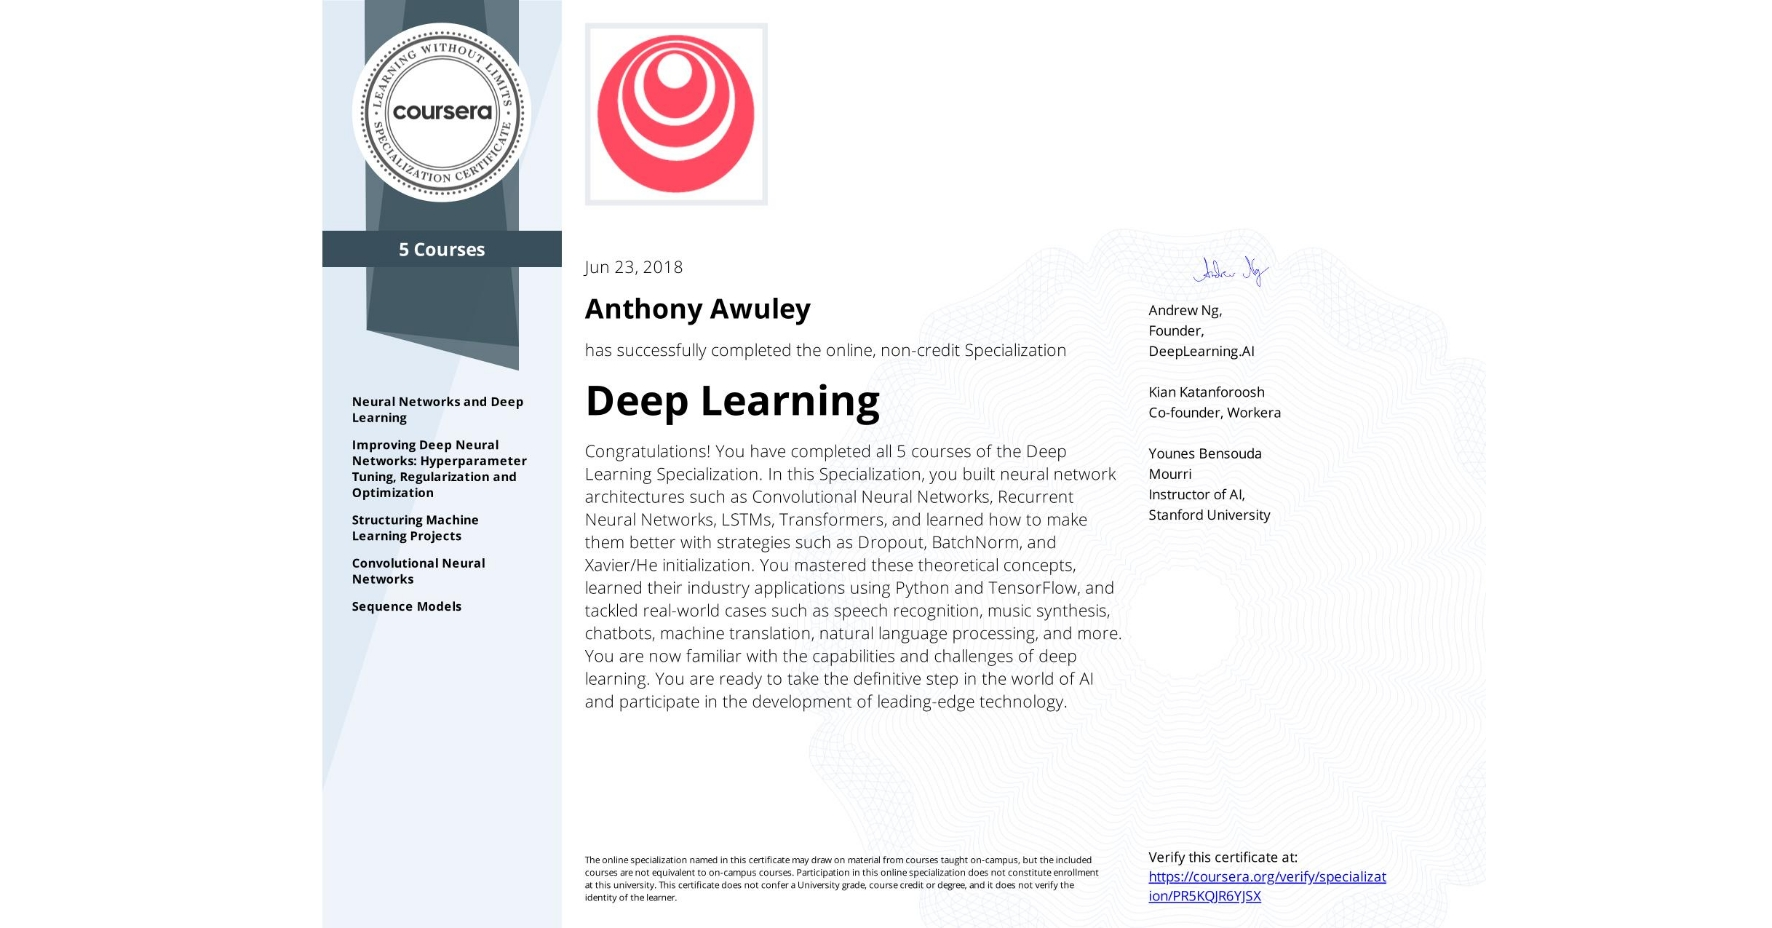 View certificate for Anthony Awuley, Deep Learning, offered through Coursera. Congratulations! You have completed all five courses of the Deep Learning Specialization.  In this Specialization, you built neural network architectures such as Convolutional Neural Networks, Recurrent Neural Networks, LSTMs, Transformers and learned how to make them better with strategies such as Dropout, BatchNorm, Xavier/He initialization, and more. You mastered these theoretical concepts and their application using Python and TensorFlow and also tackled real-world case studies such as autonomous driving, sign language reading, music generation, computer vision, speech recognition, and natural language processing.   You're now familiar with the capabilities, challenges, and consequences of deep learning and are ready to participate in the development of leading-edge AI technology.